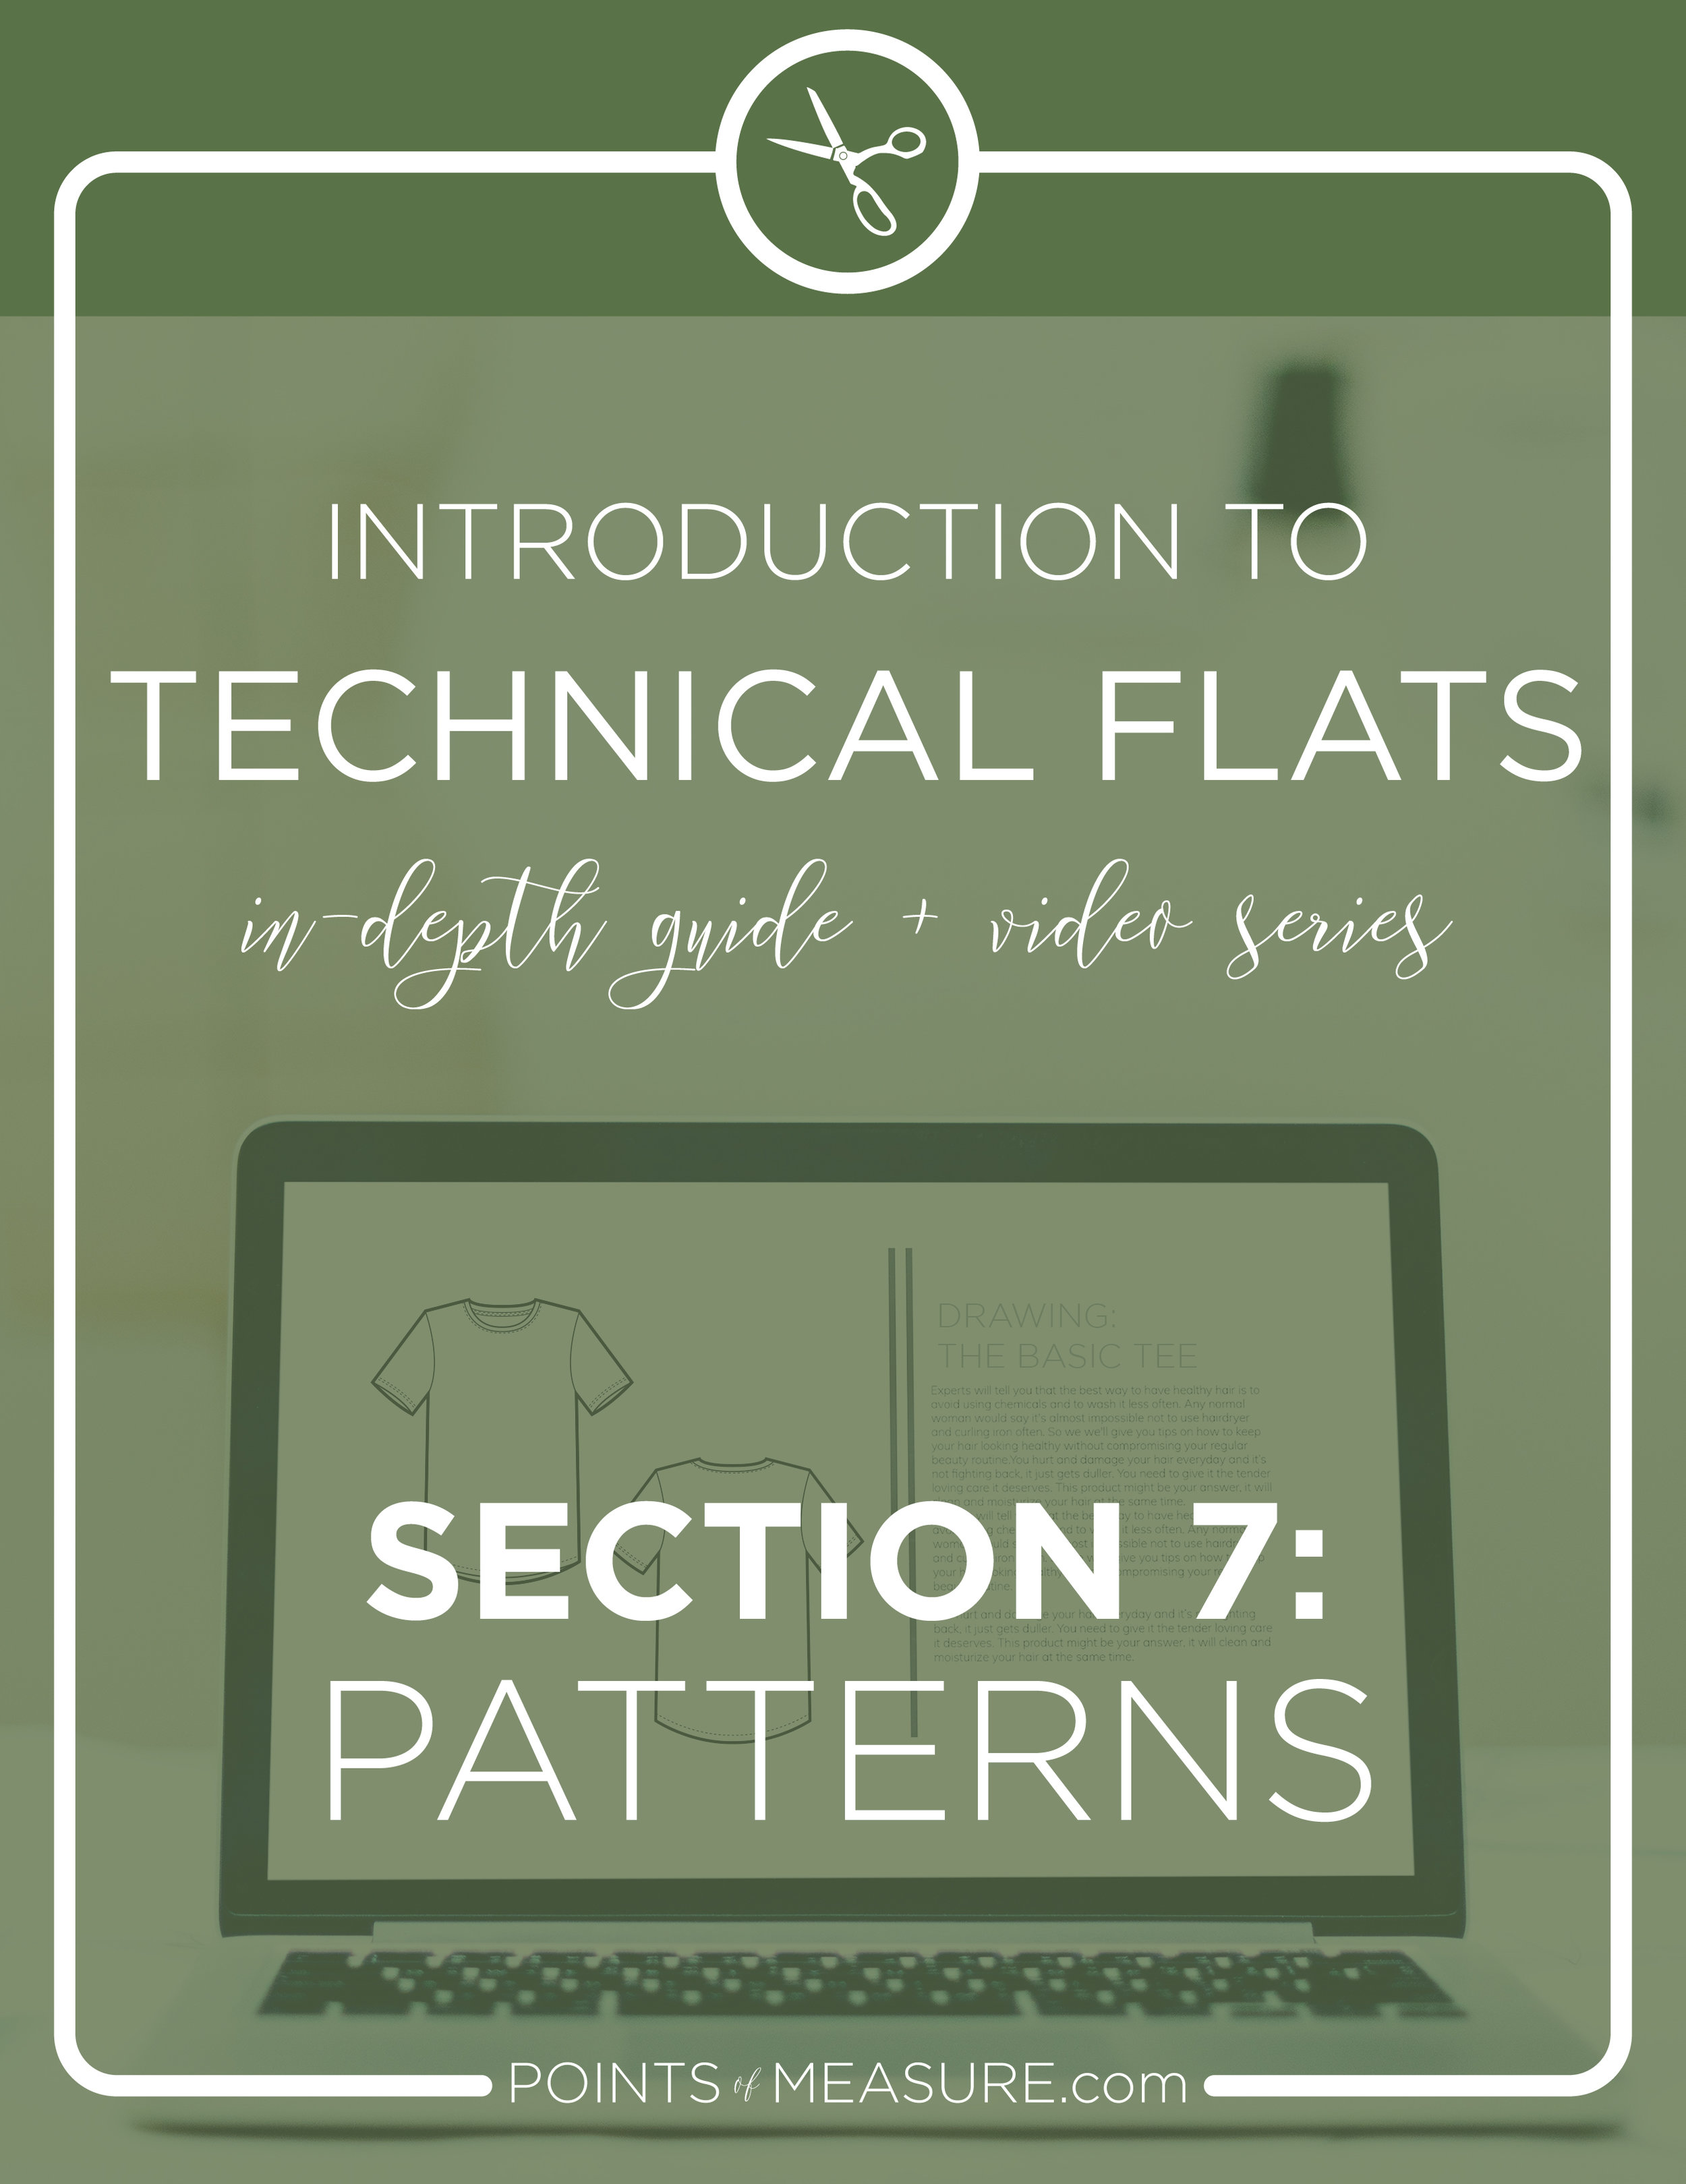 introduction-to-technical-flats-section-7-patterns-points-of-measure.jpg